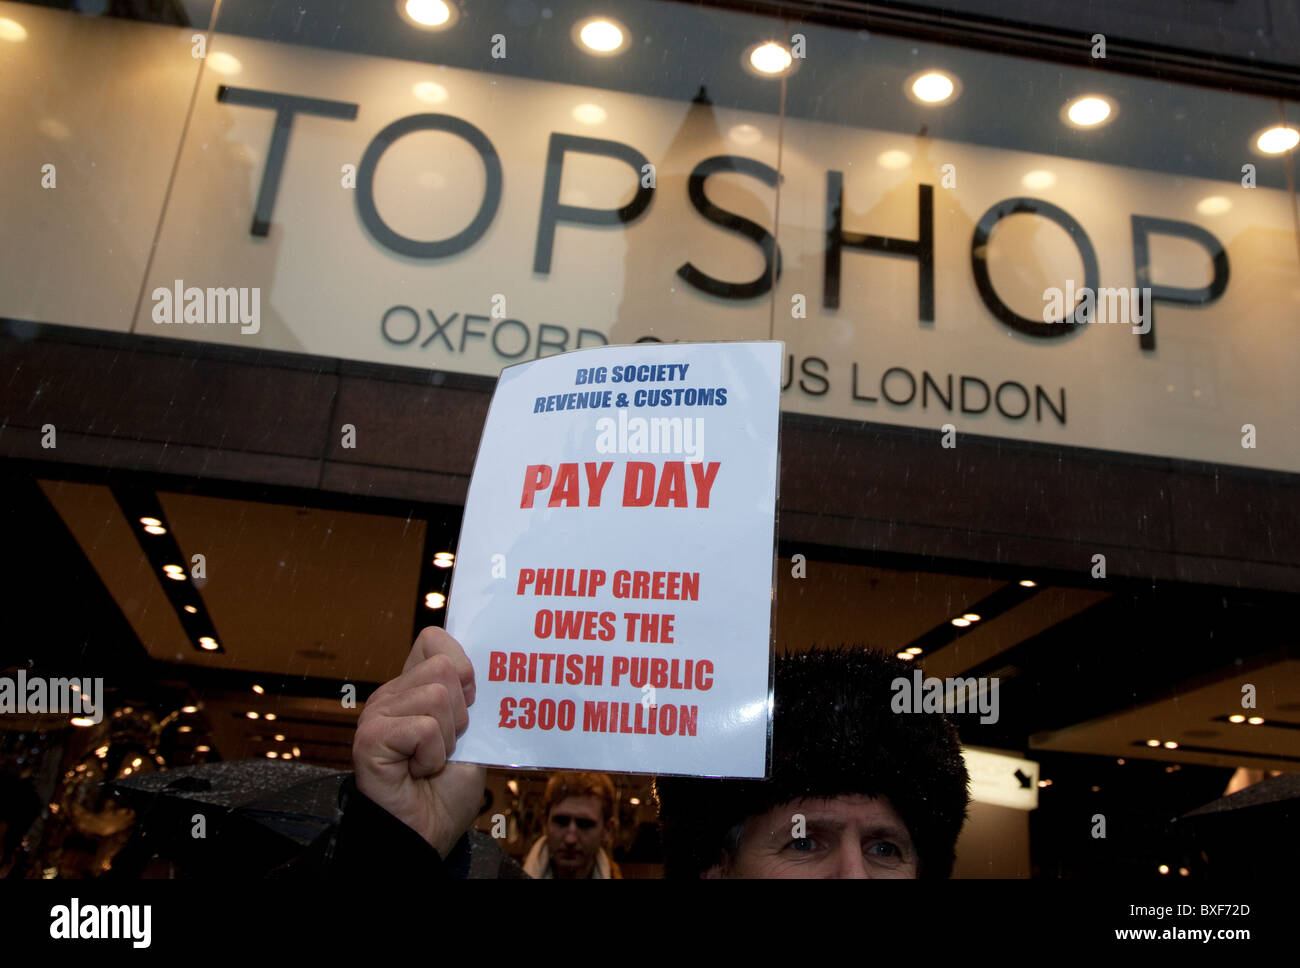 Protest against unpaid taxes at Topshop in Oxford Circus, London - Stock Image